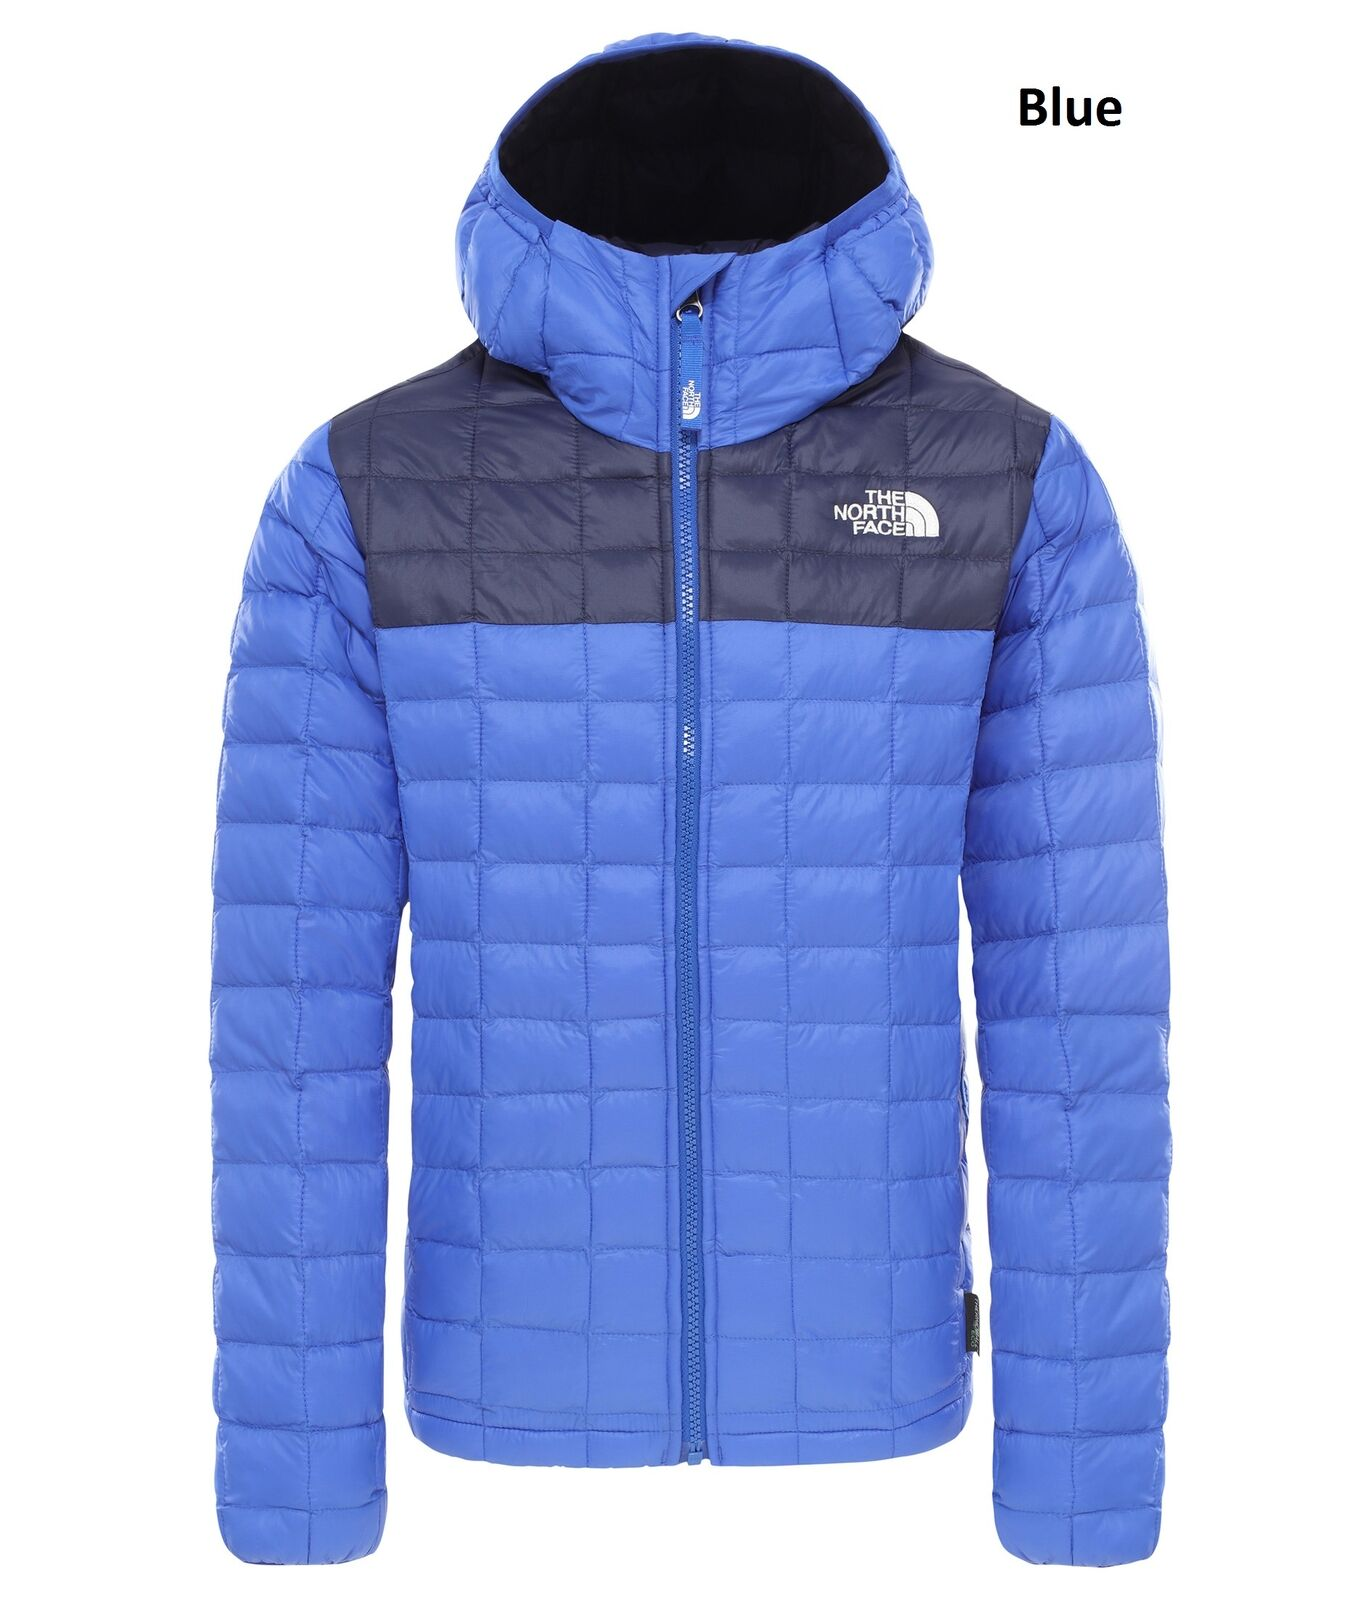 The North Face Boys Thermoball Eco Hoodie Jacket - Warm and Hooded